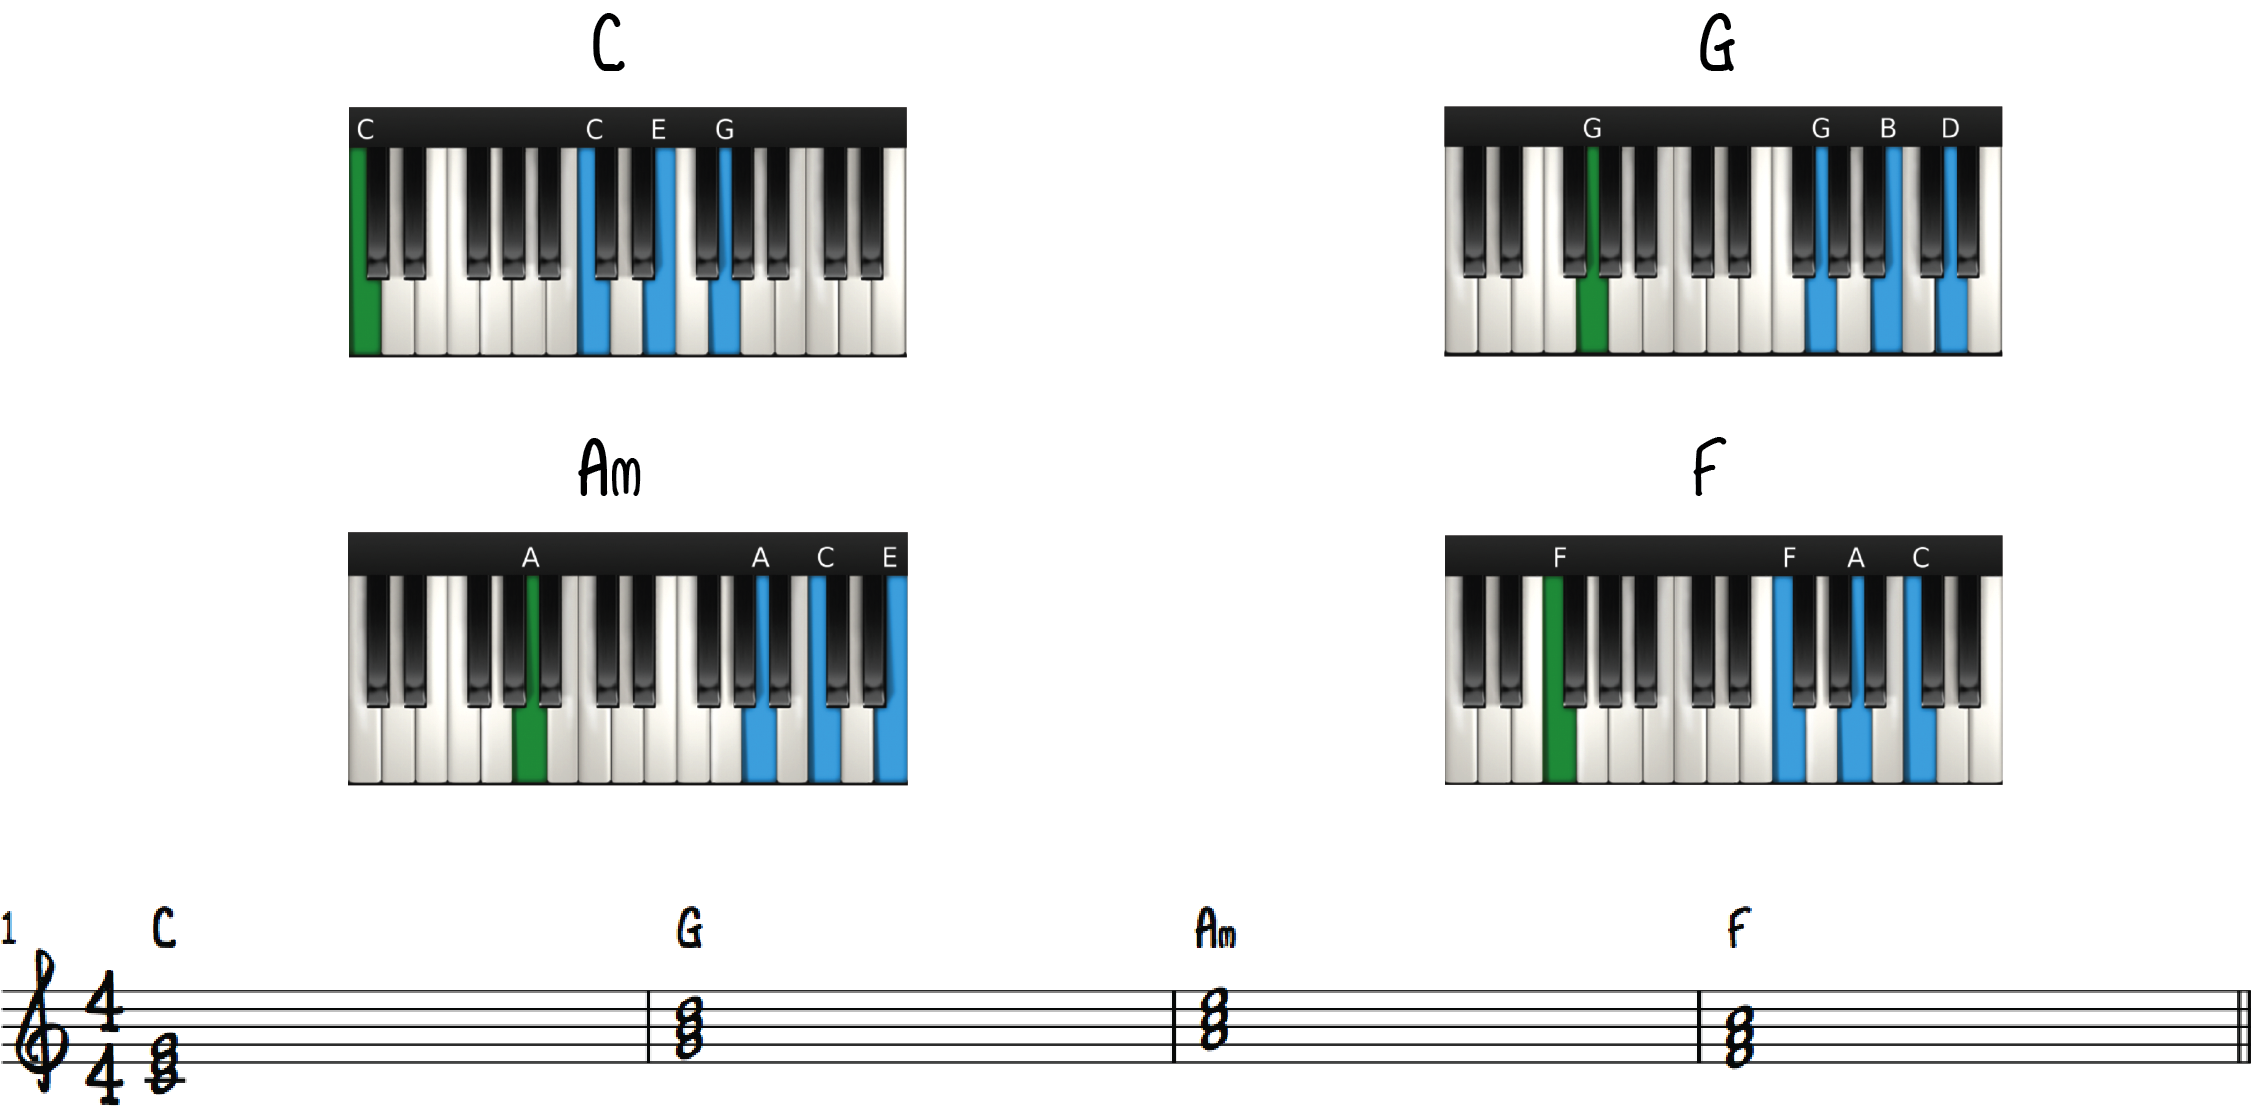 1-5-6-4 Piano Chord Progression